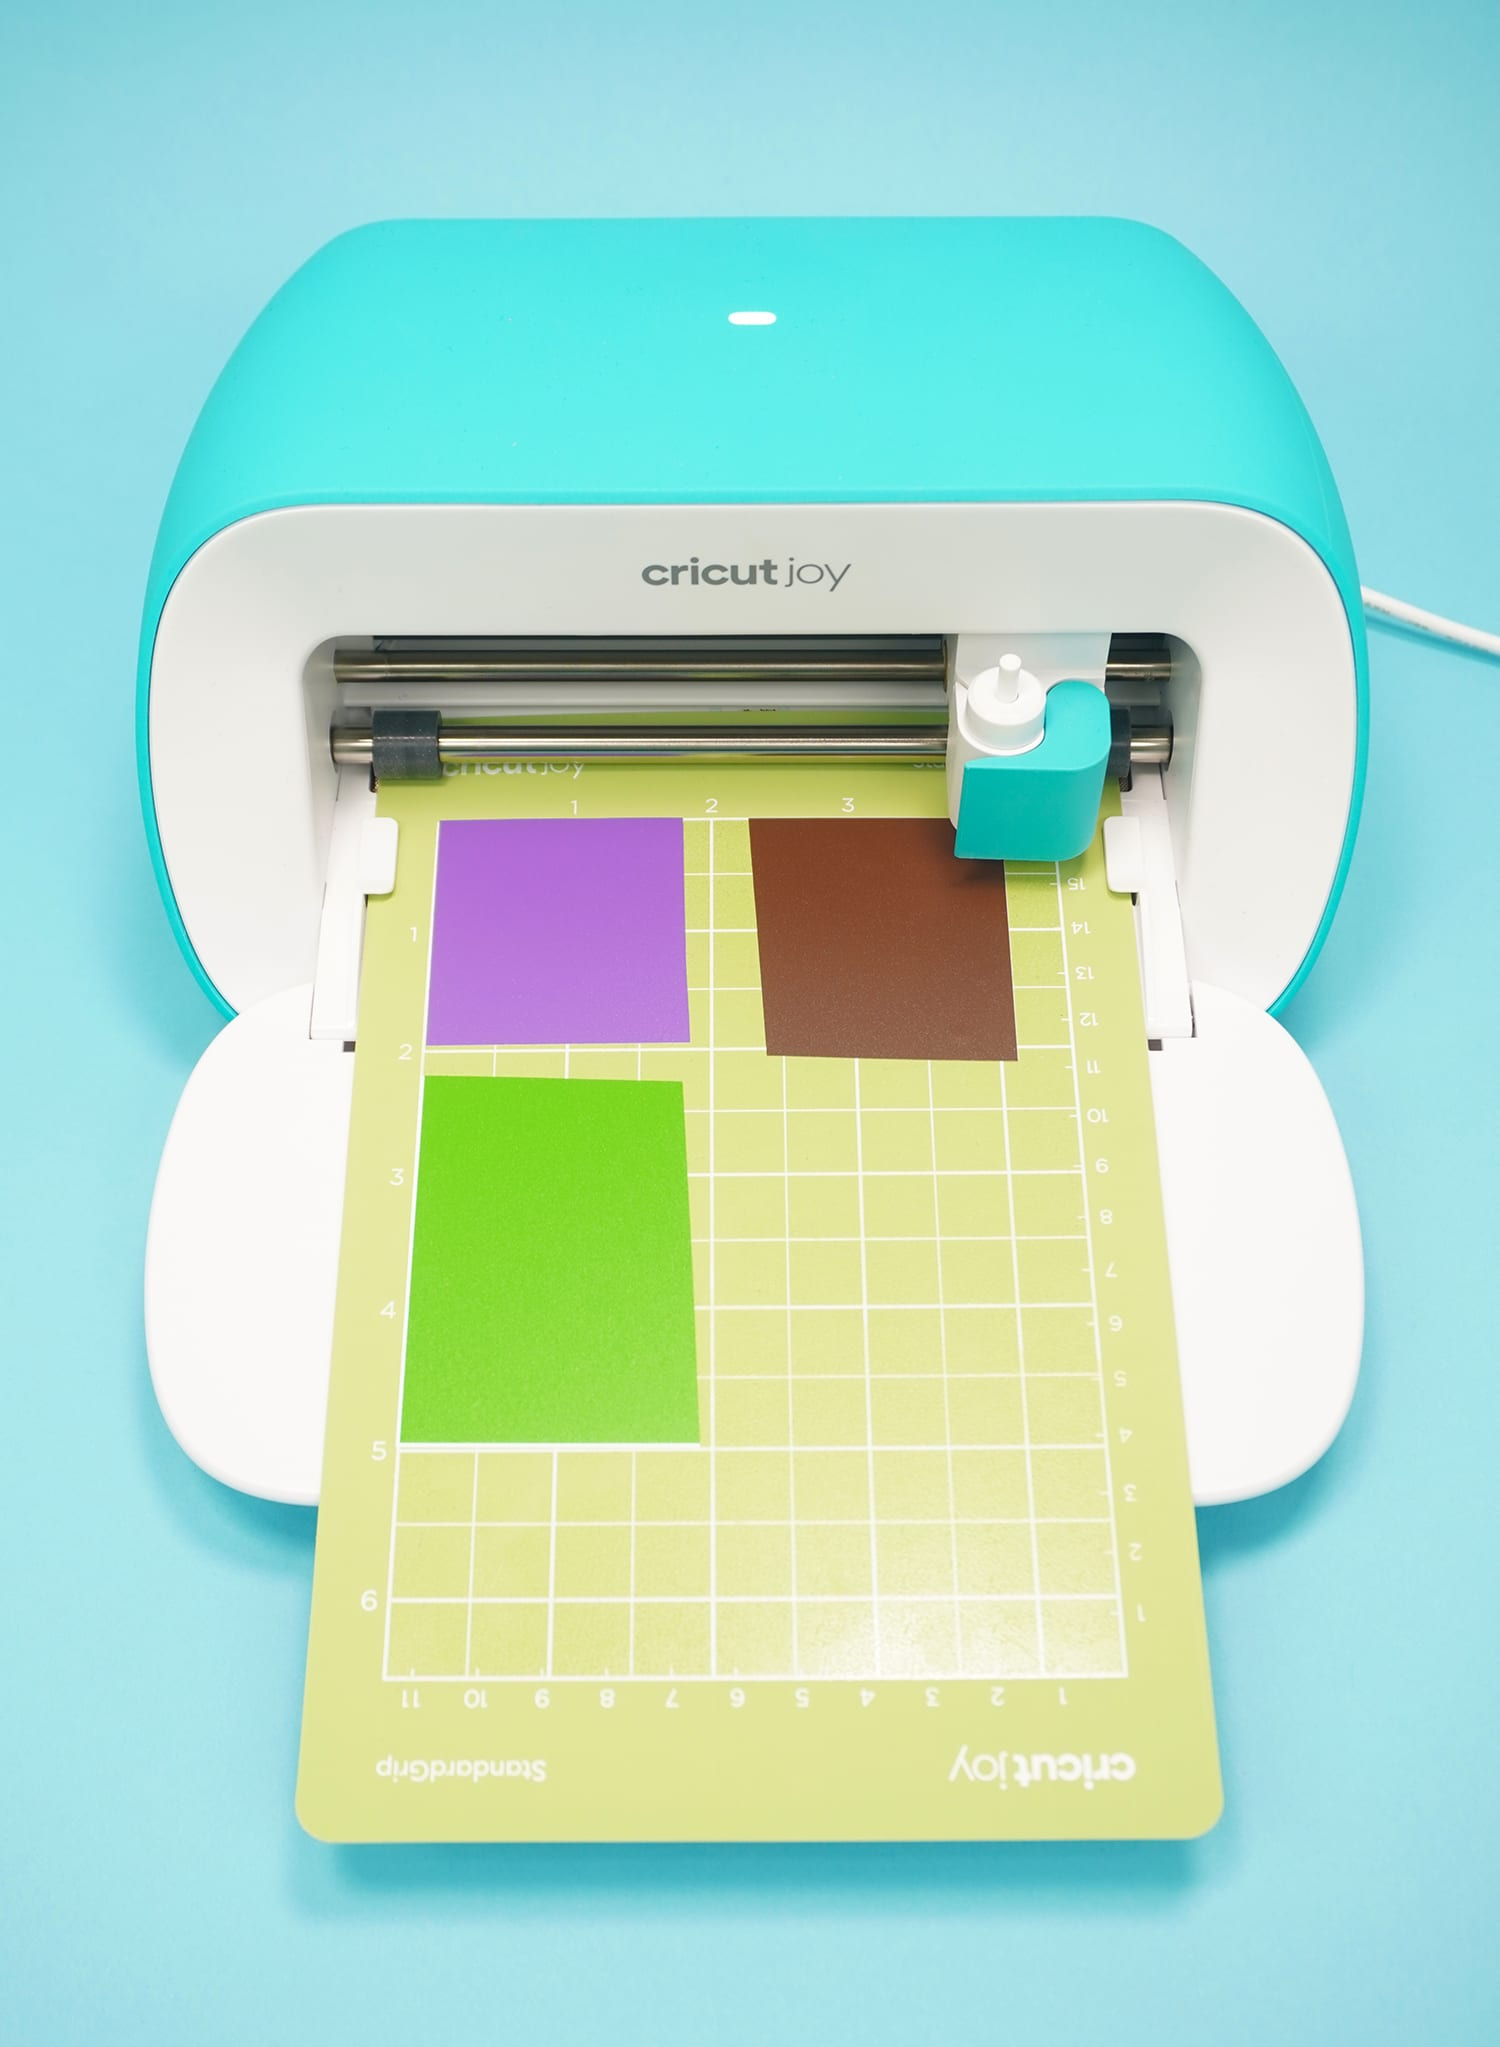 Cricut Joy machine with green cutting mat and scraps of purple, brown, and green vinyl